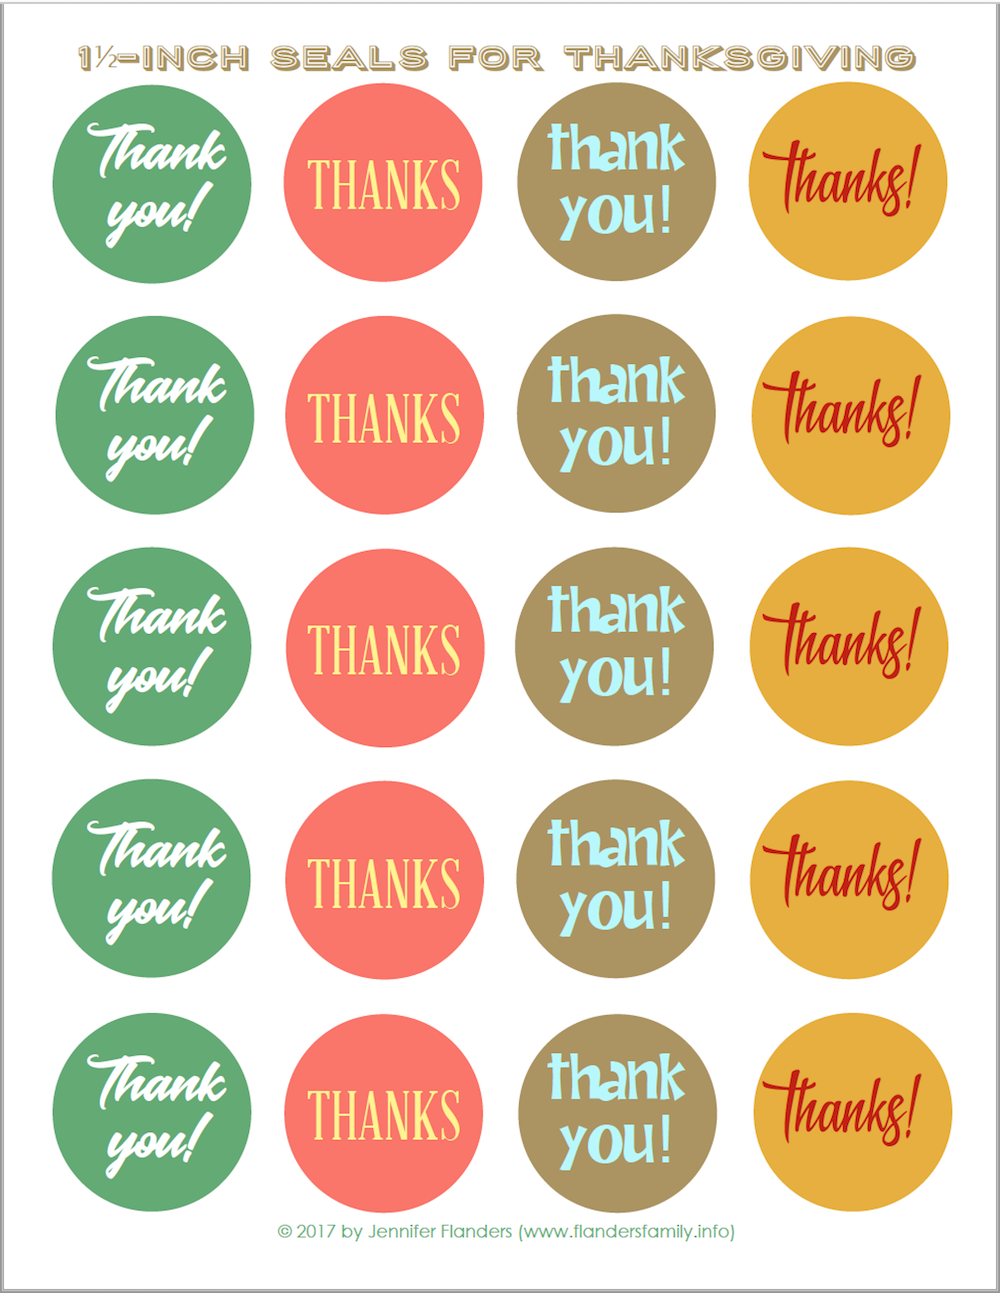 Free Printable Stickers/ Envelope Seals for Thanksgiving